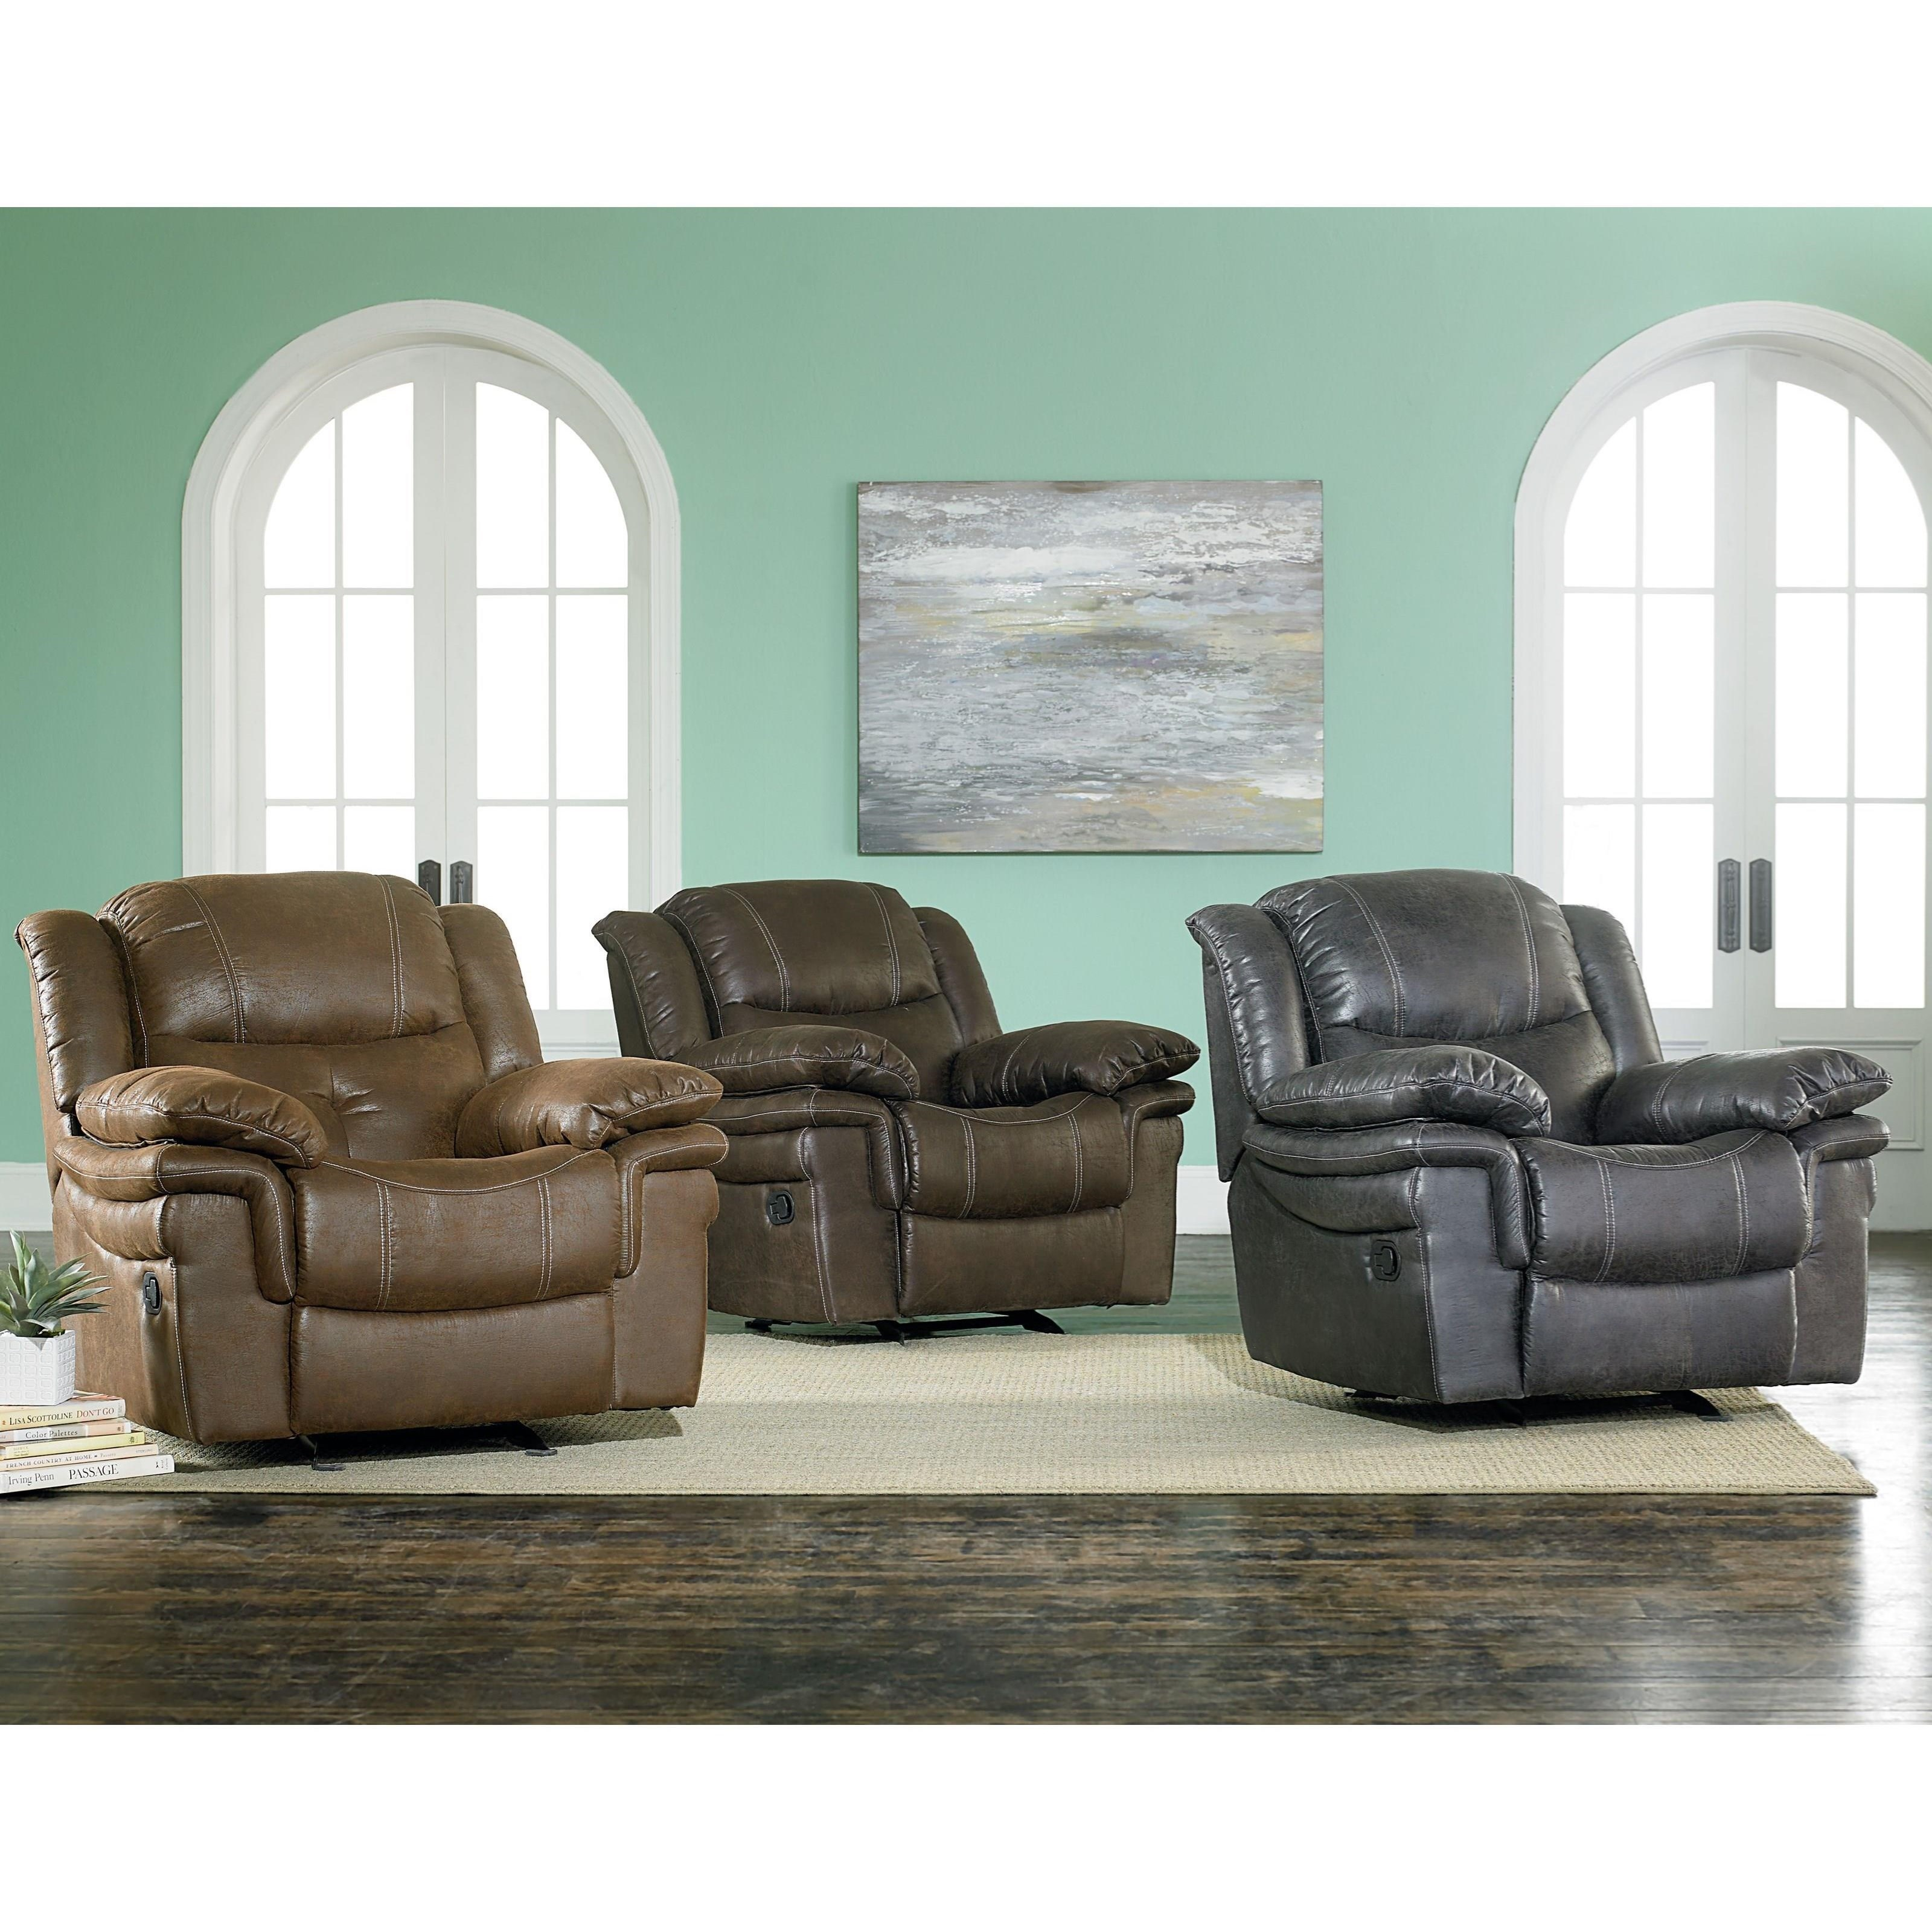 Standard Furniture Huxford Glider Recliner With Pillow